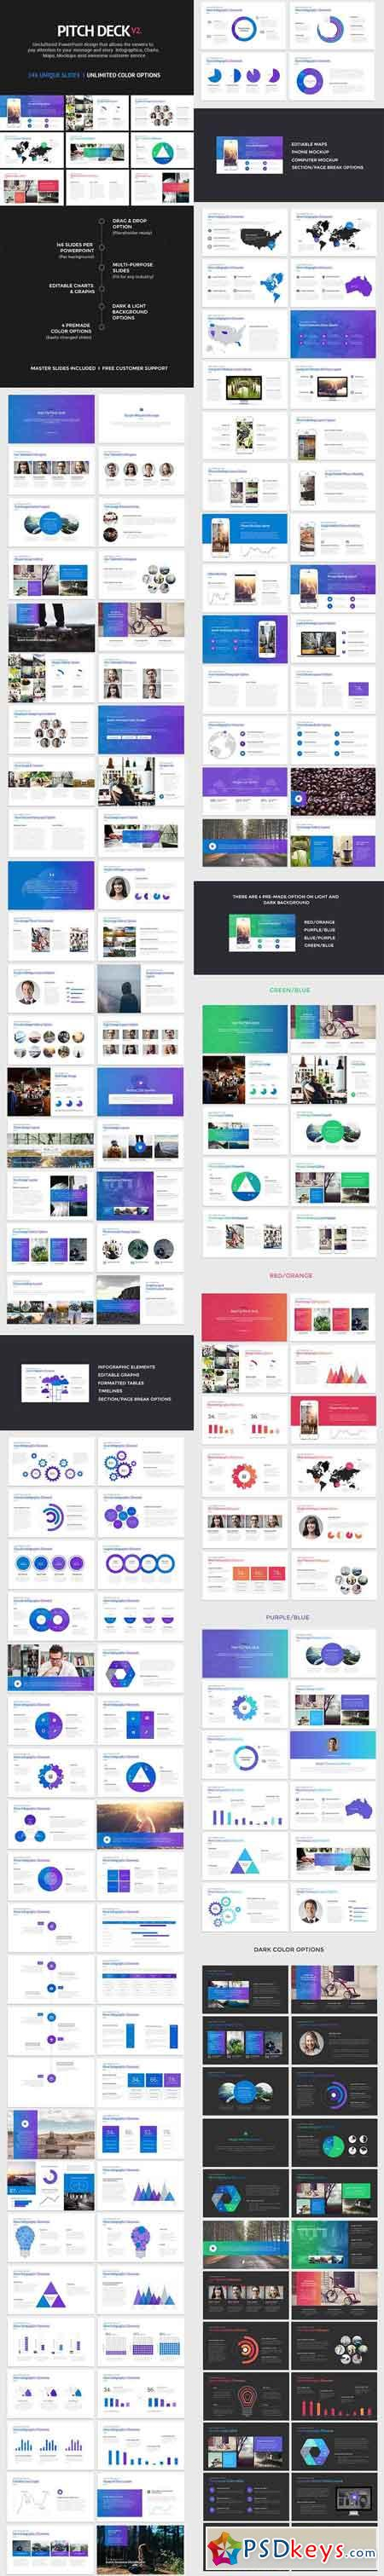 Pitch Deck Start Up Powerpoint 12253011